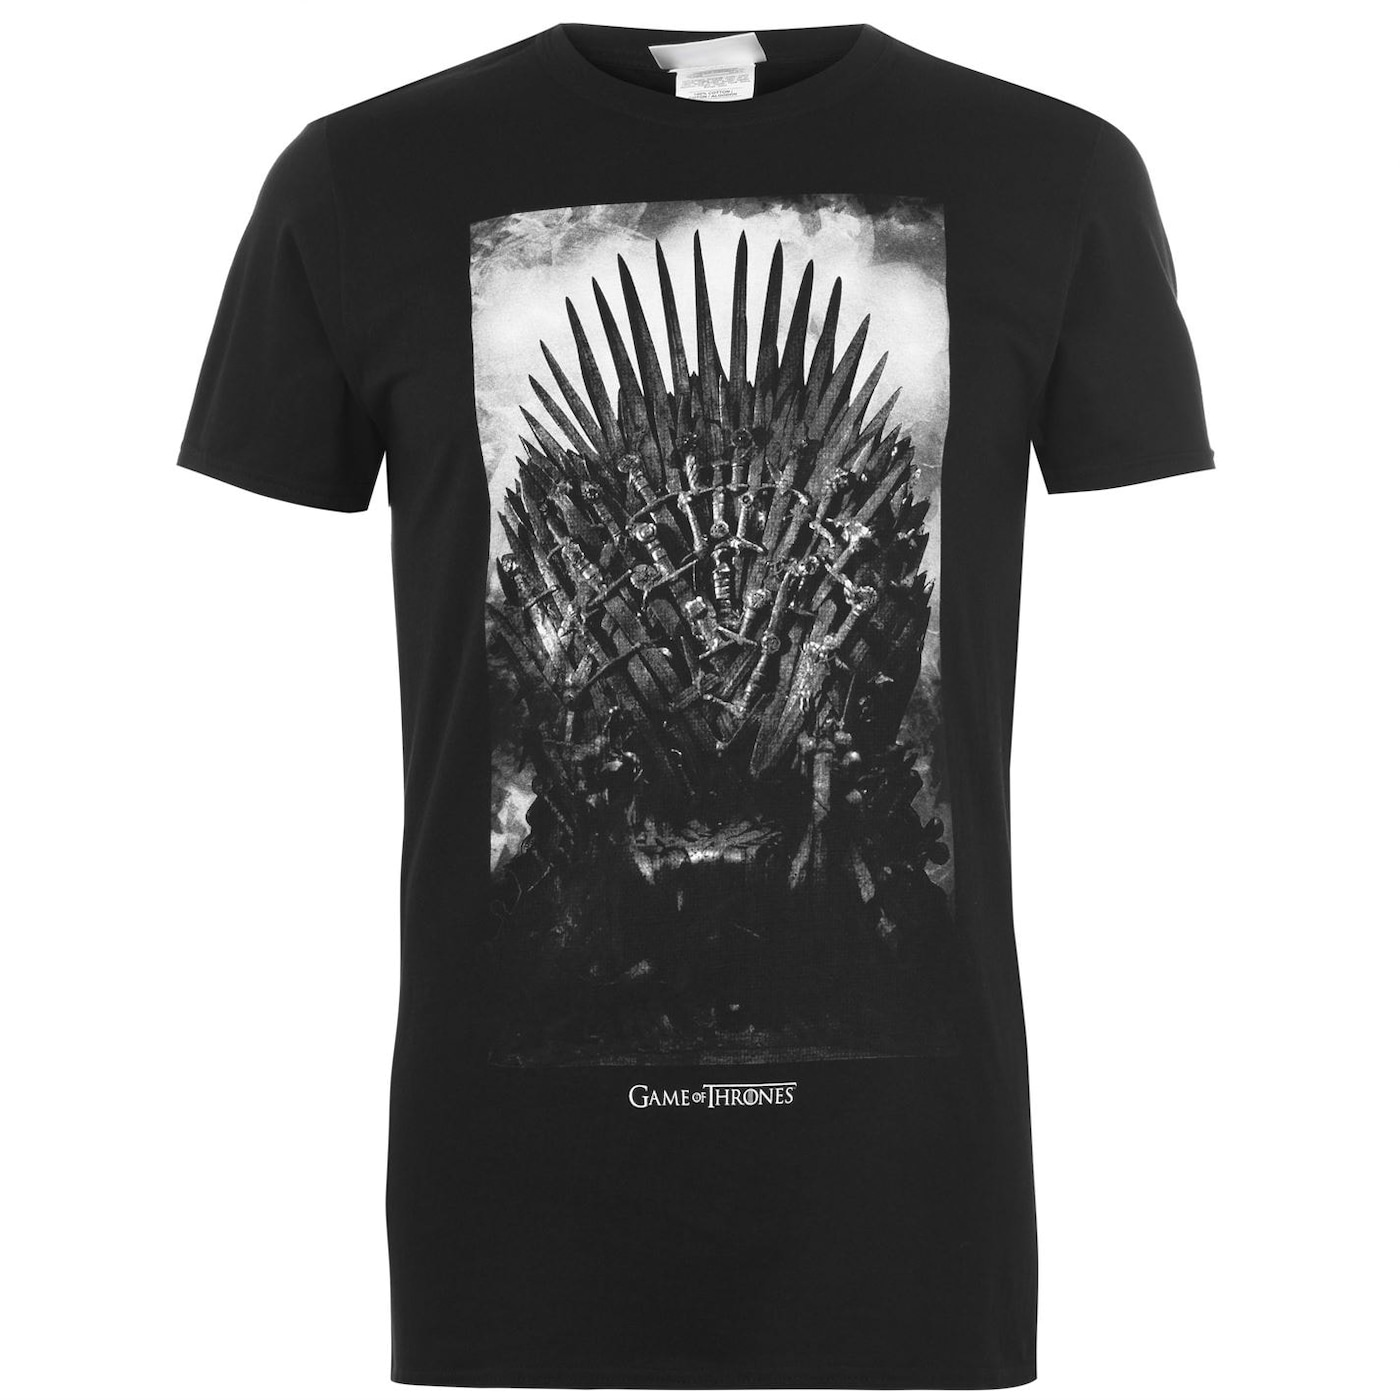 Character Game of Thrones T Shirt Mens